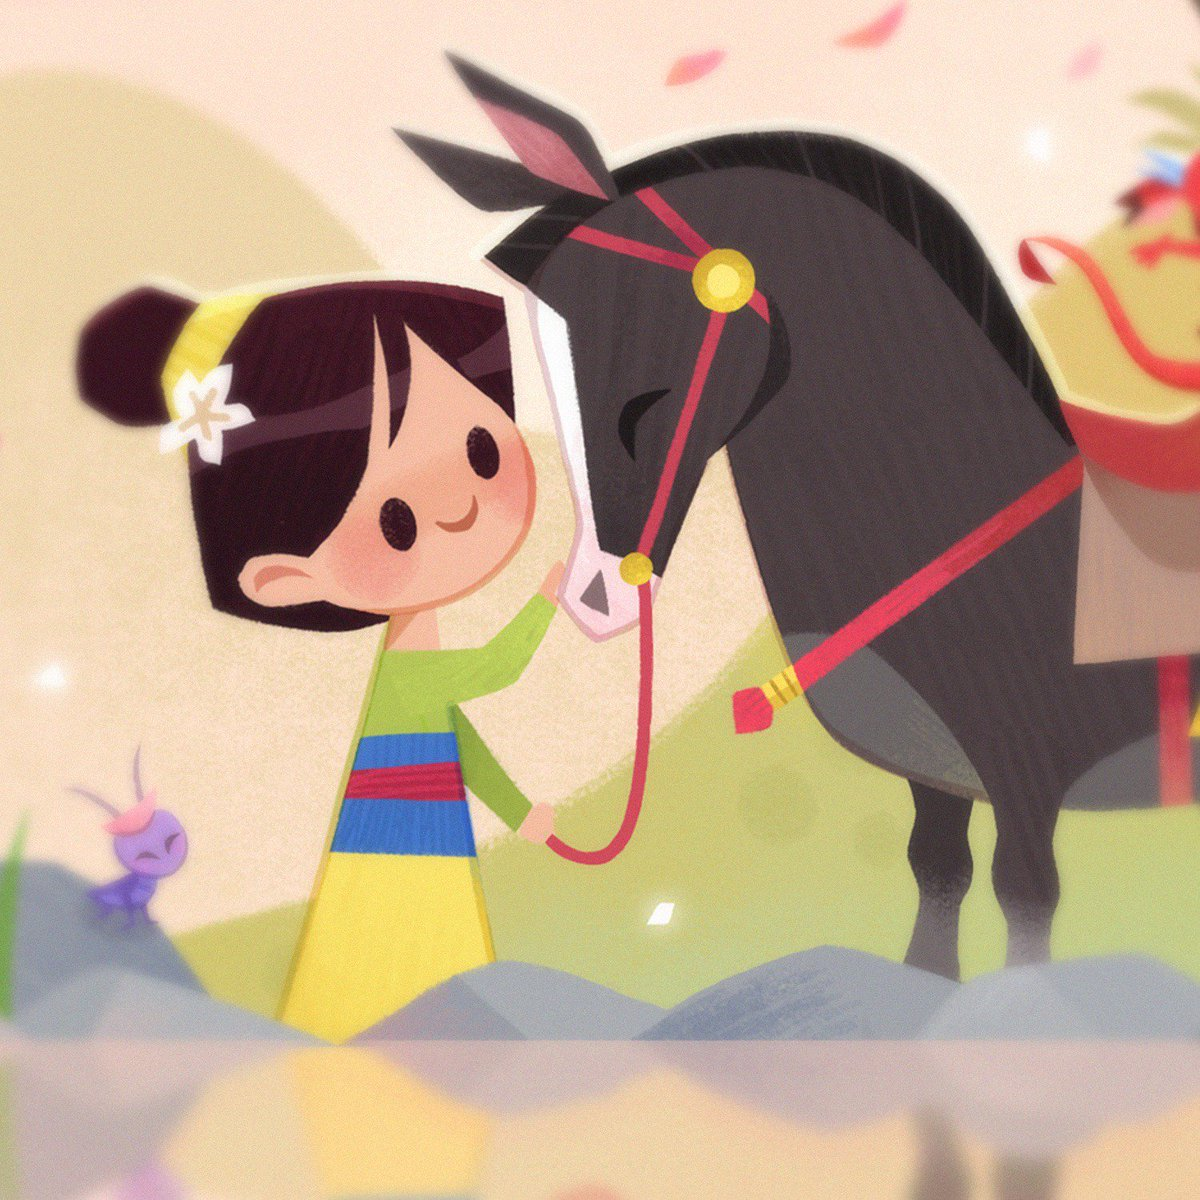 here&#39;s a sneak peek of my piece for Mulan&#39;s 20th anniversary tribute show @gallerynucleus  opening reception is on 10/20 <br>http://pic.twitter.com/XPTMjW8ppM